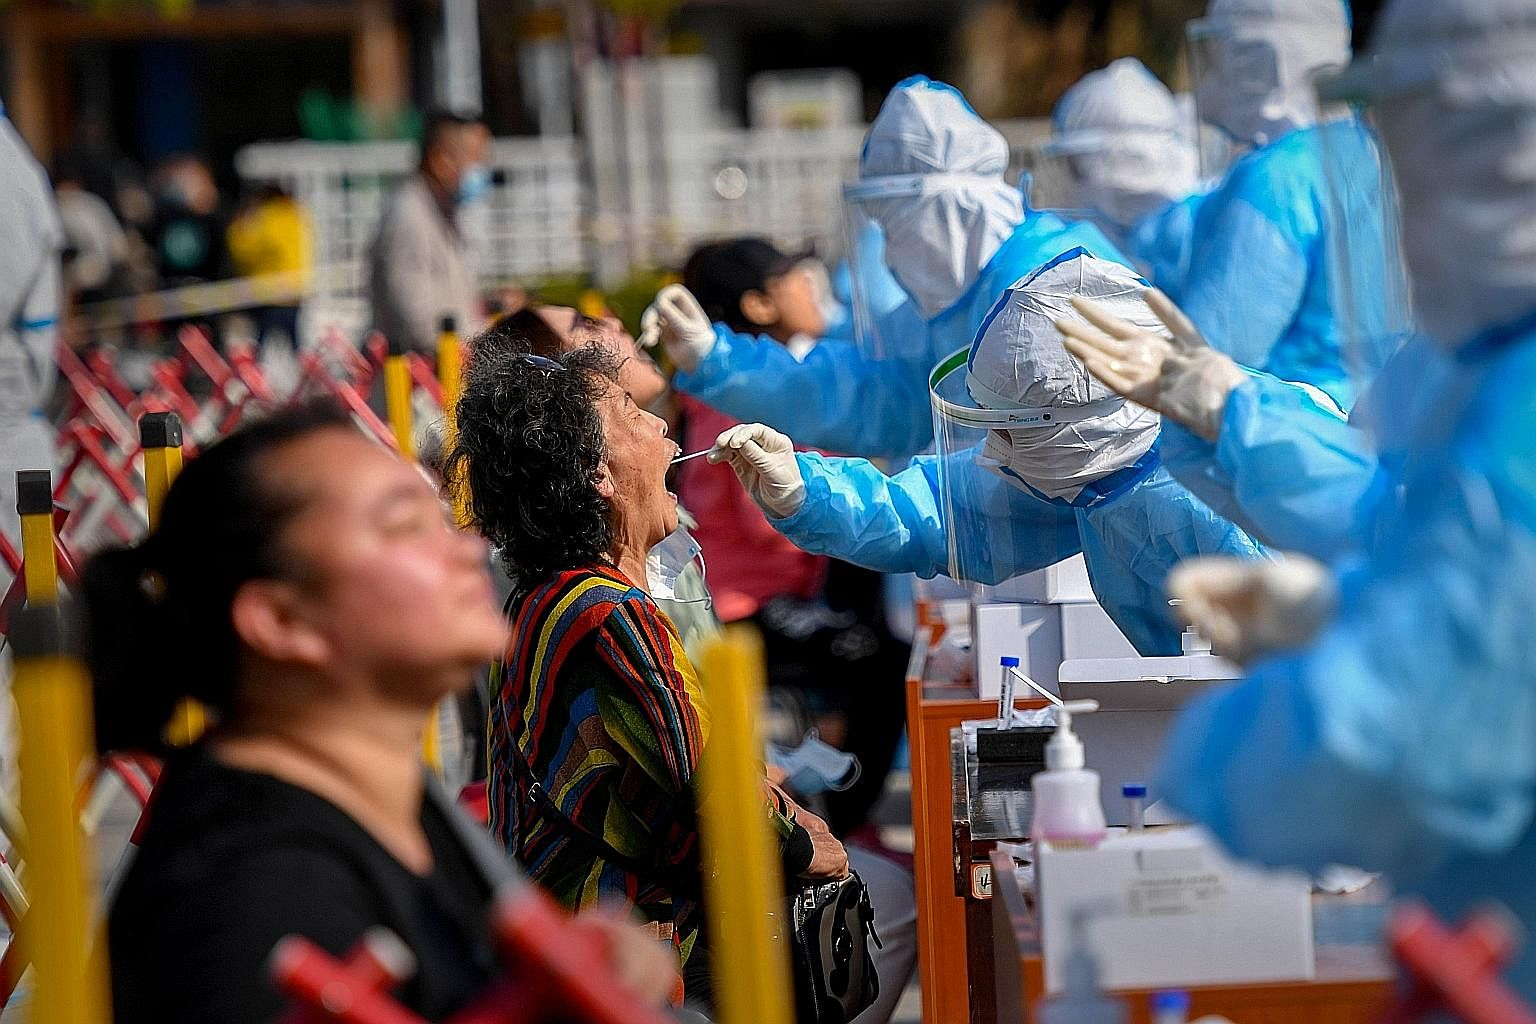 Health workers in Qingdao in eastern China's Shandong province taking swabs from residents for Covid-19 tests yesterday, after the city reported a new cluster of 12 cases, snapping the country's streak of more than two months without a local transmis